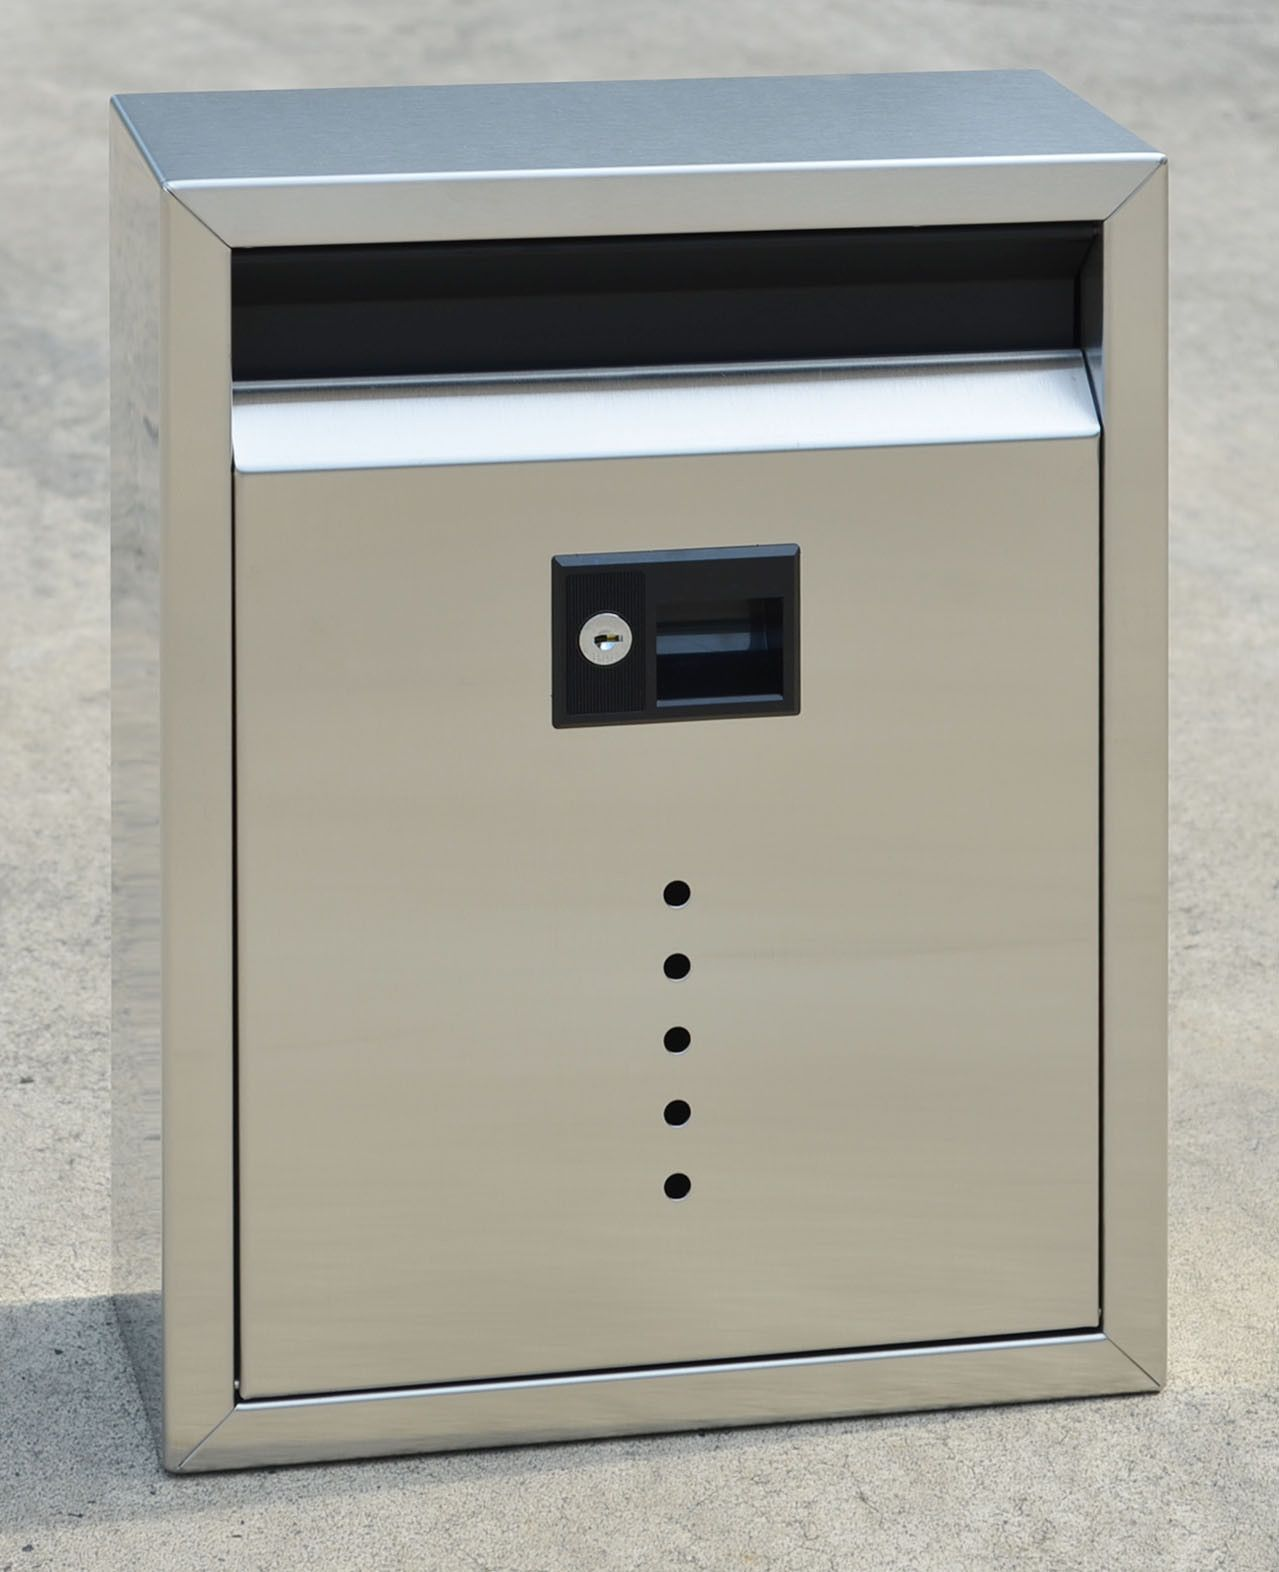 Vault Locking Wall Mounted Mailbox in 2019 | Products | Wall